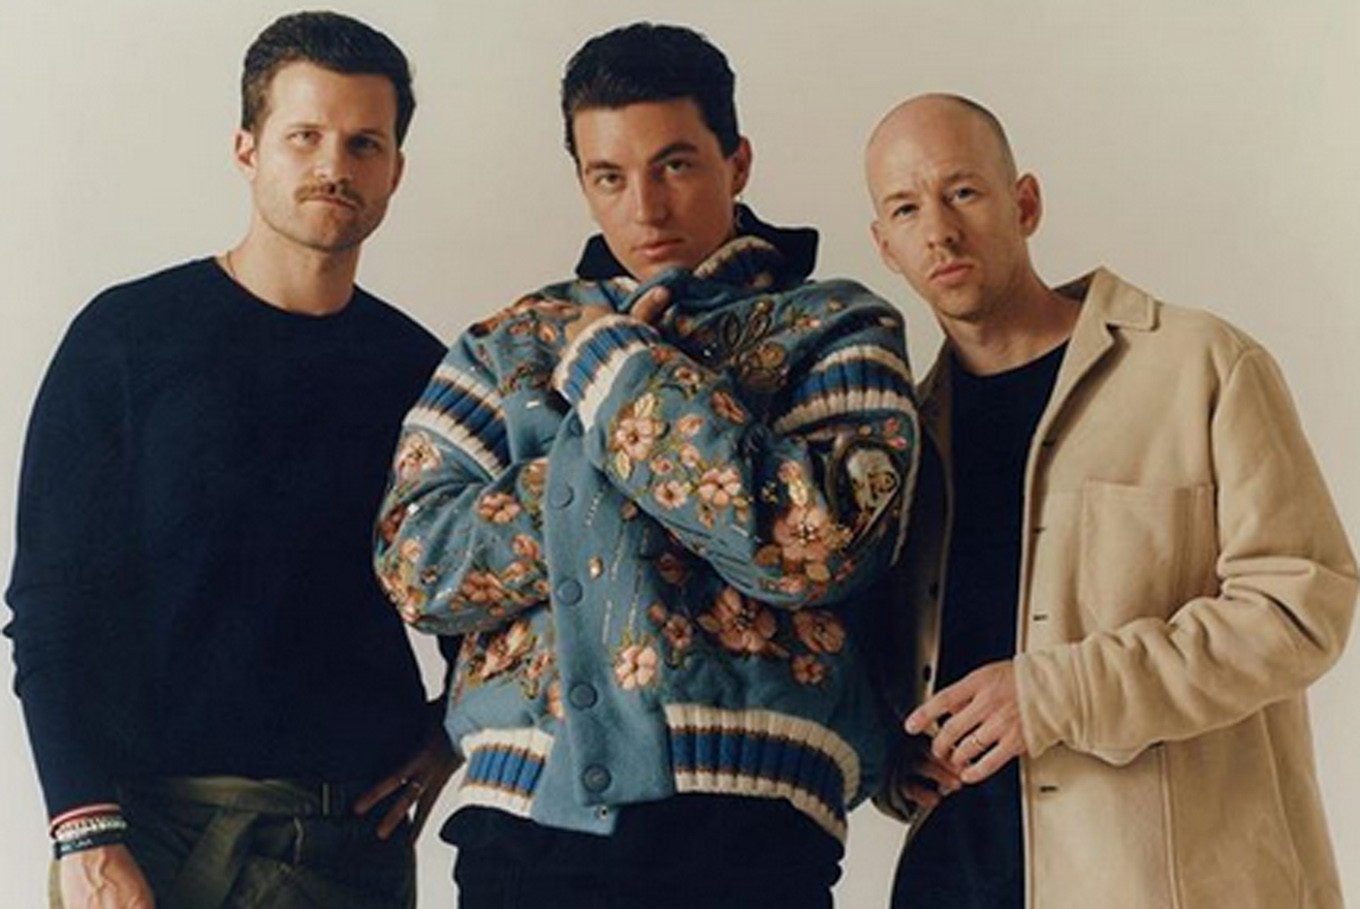 Lany's fans angered by Jakarta concert cancelation